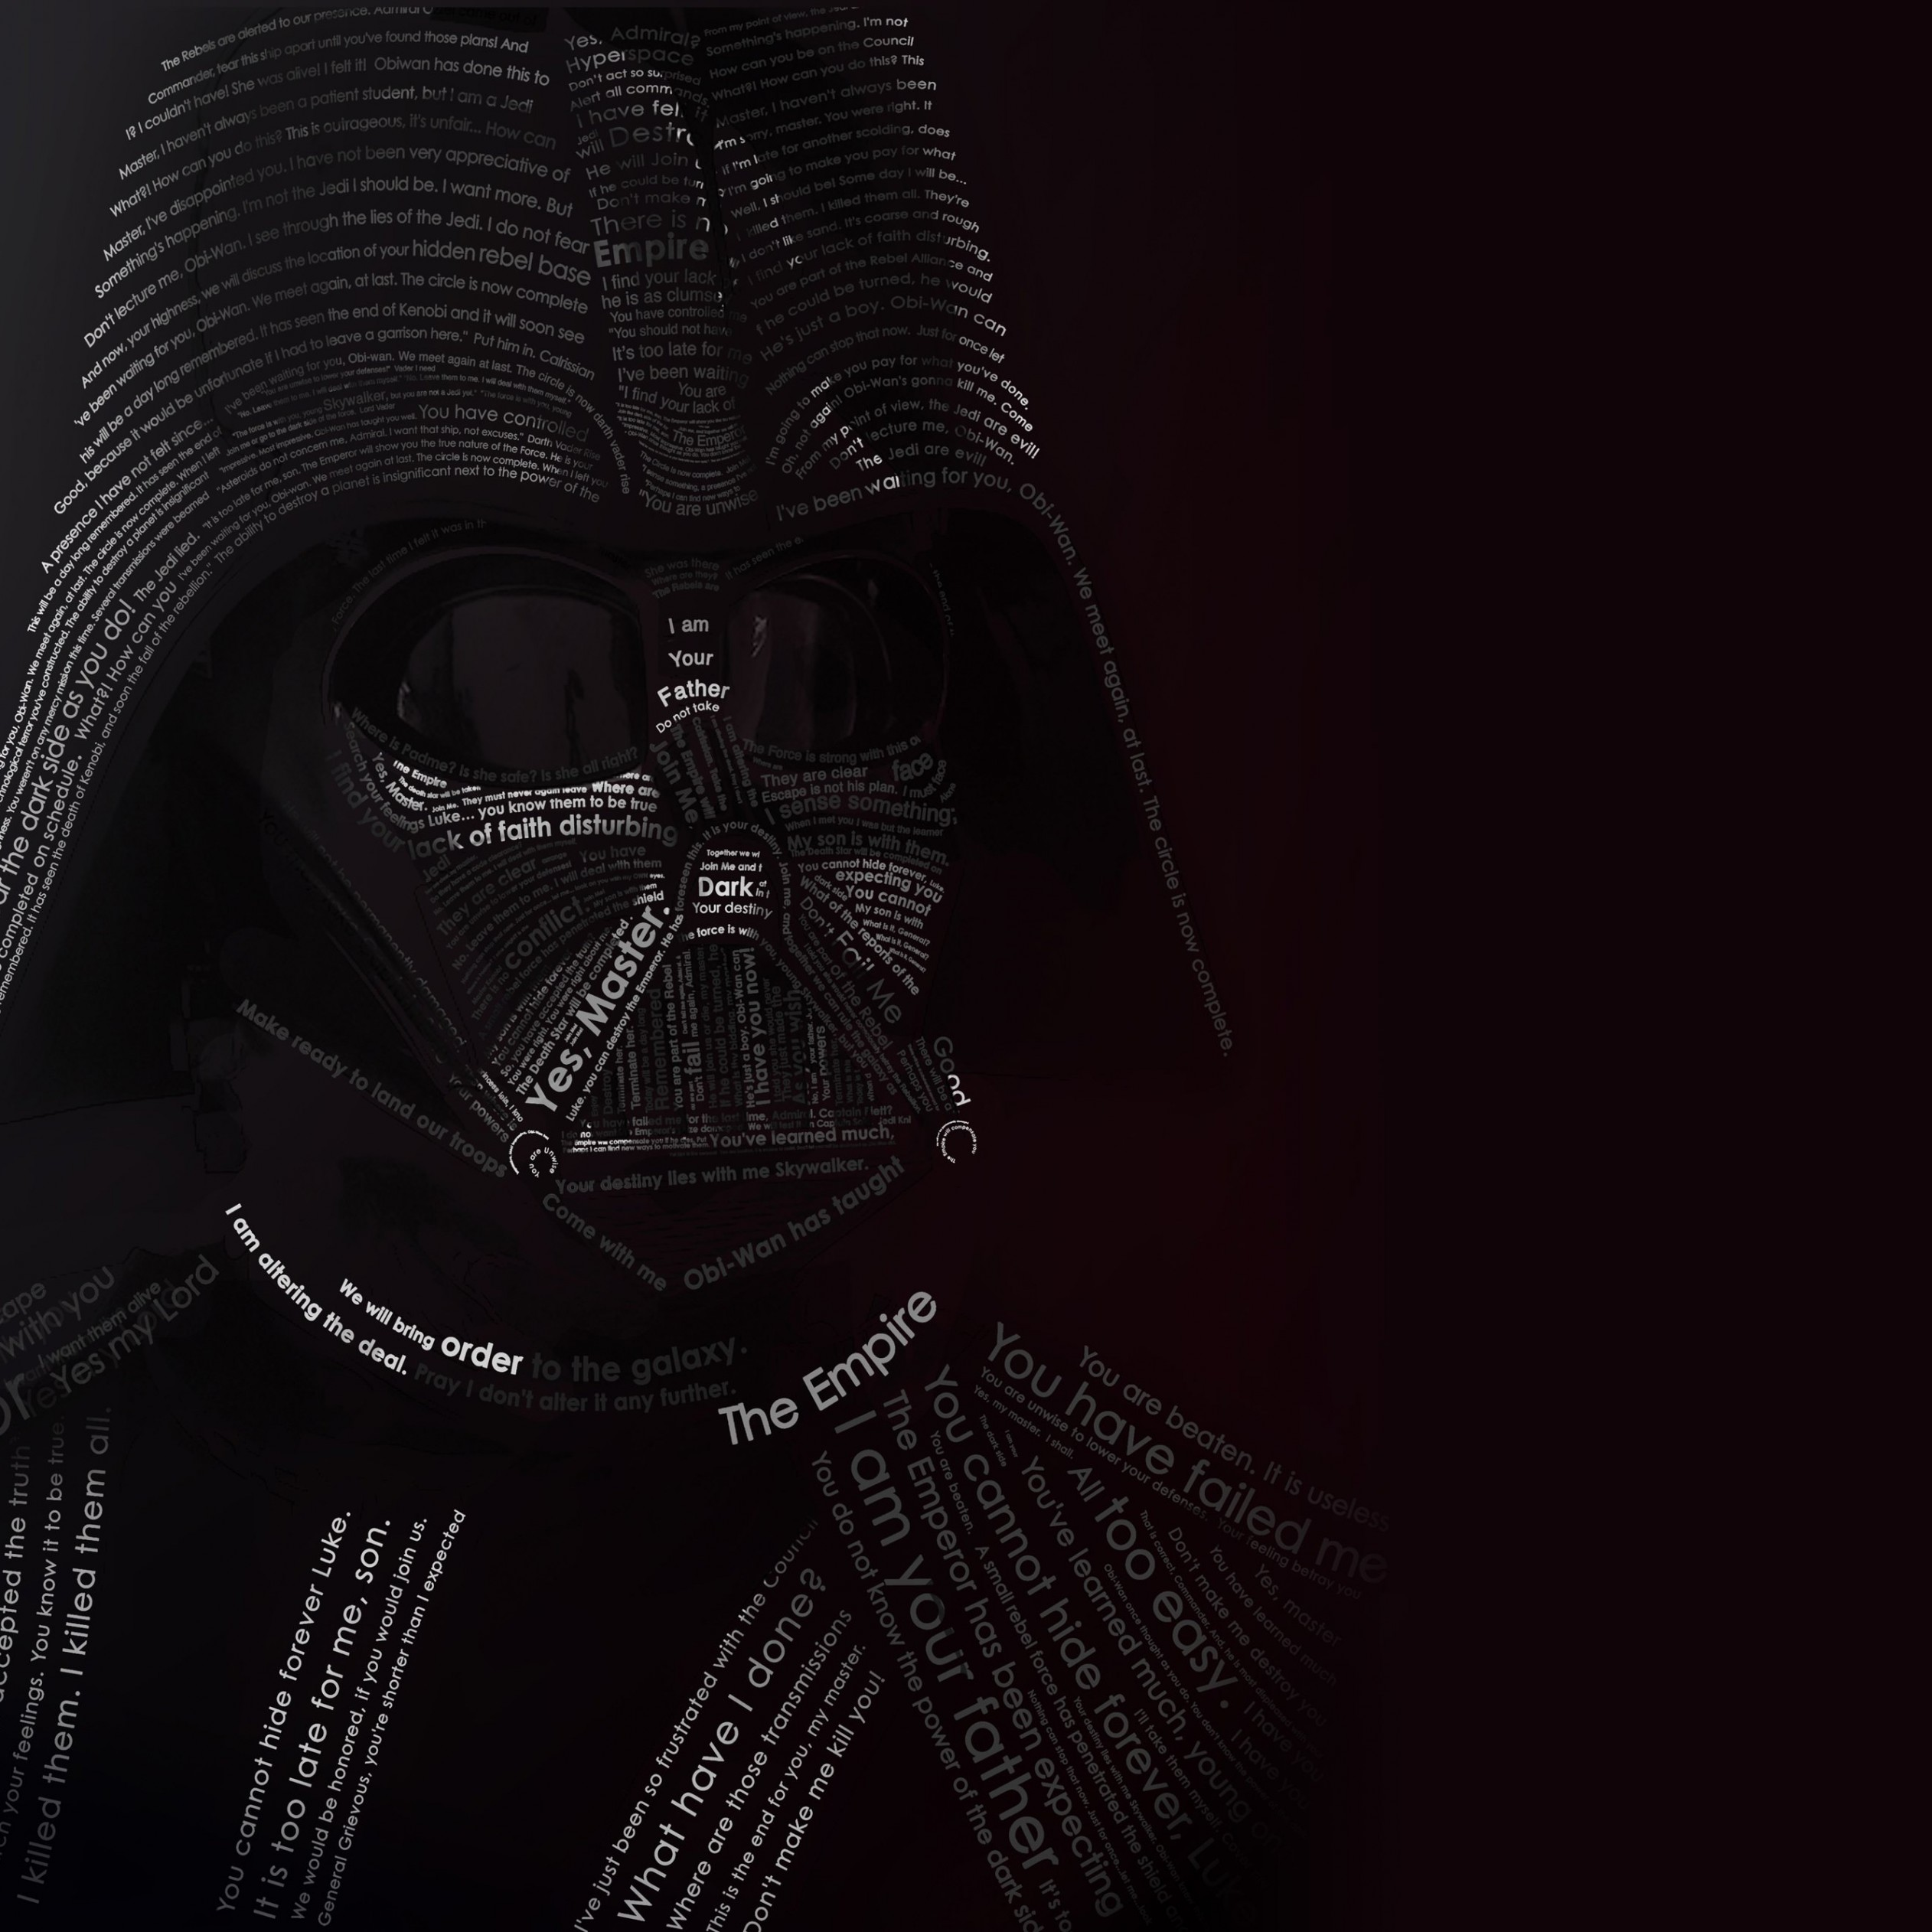 Darth Vader Typographic Portrait Wallpaper for Apple iPad Air